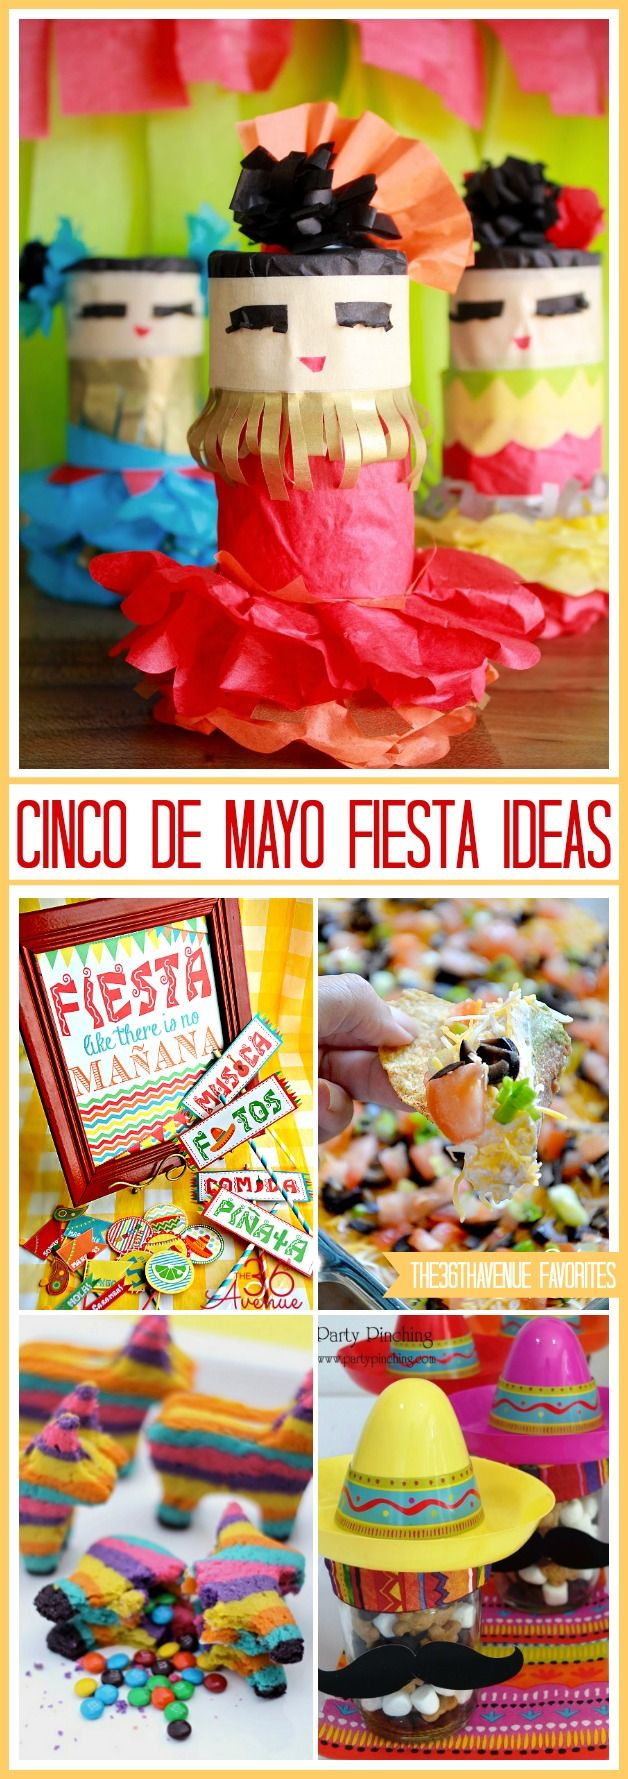 175 best images about hispanic culture kids crafts on pinterest crafts mini pinatas and - Cinco de mayo party decoration ideas ...